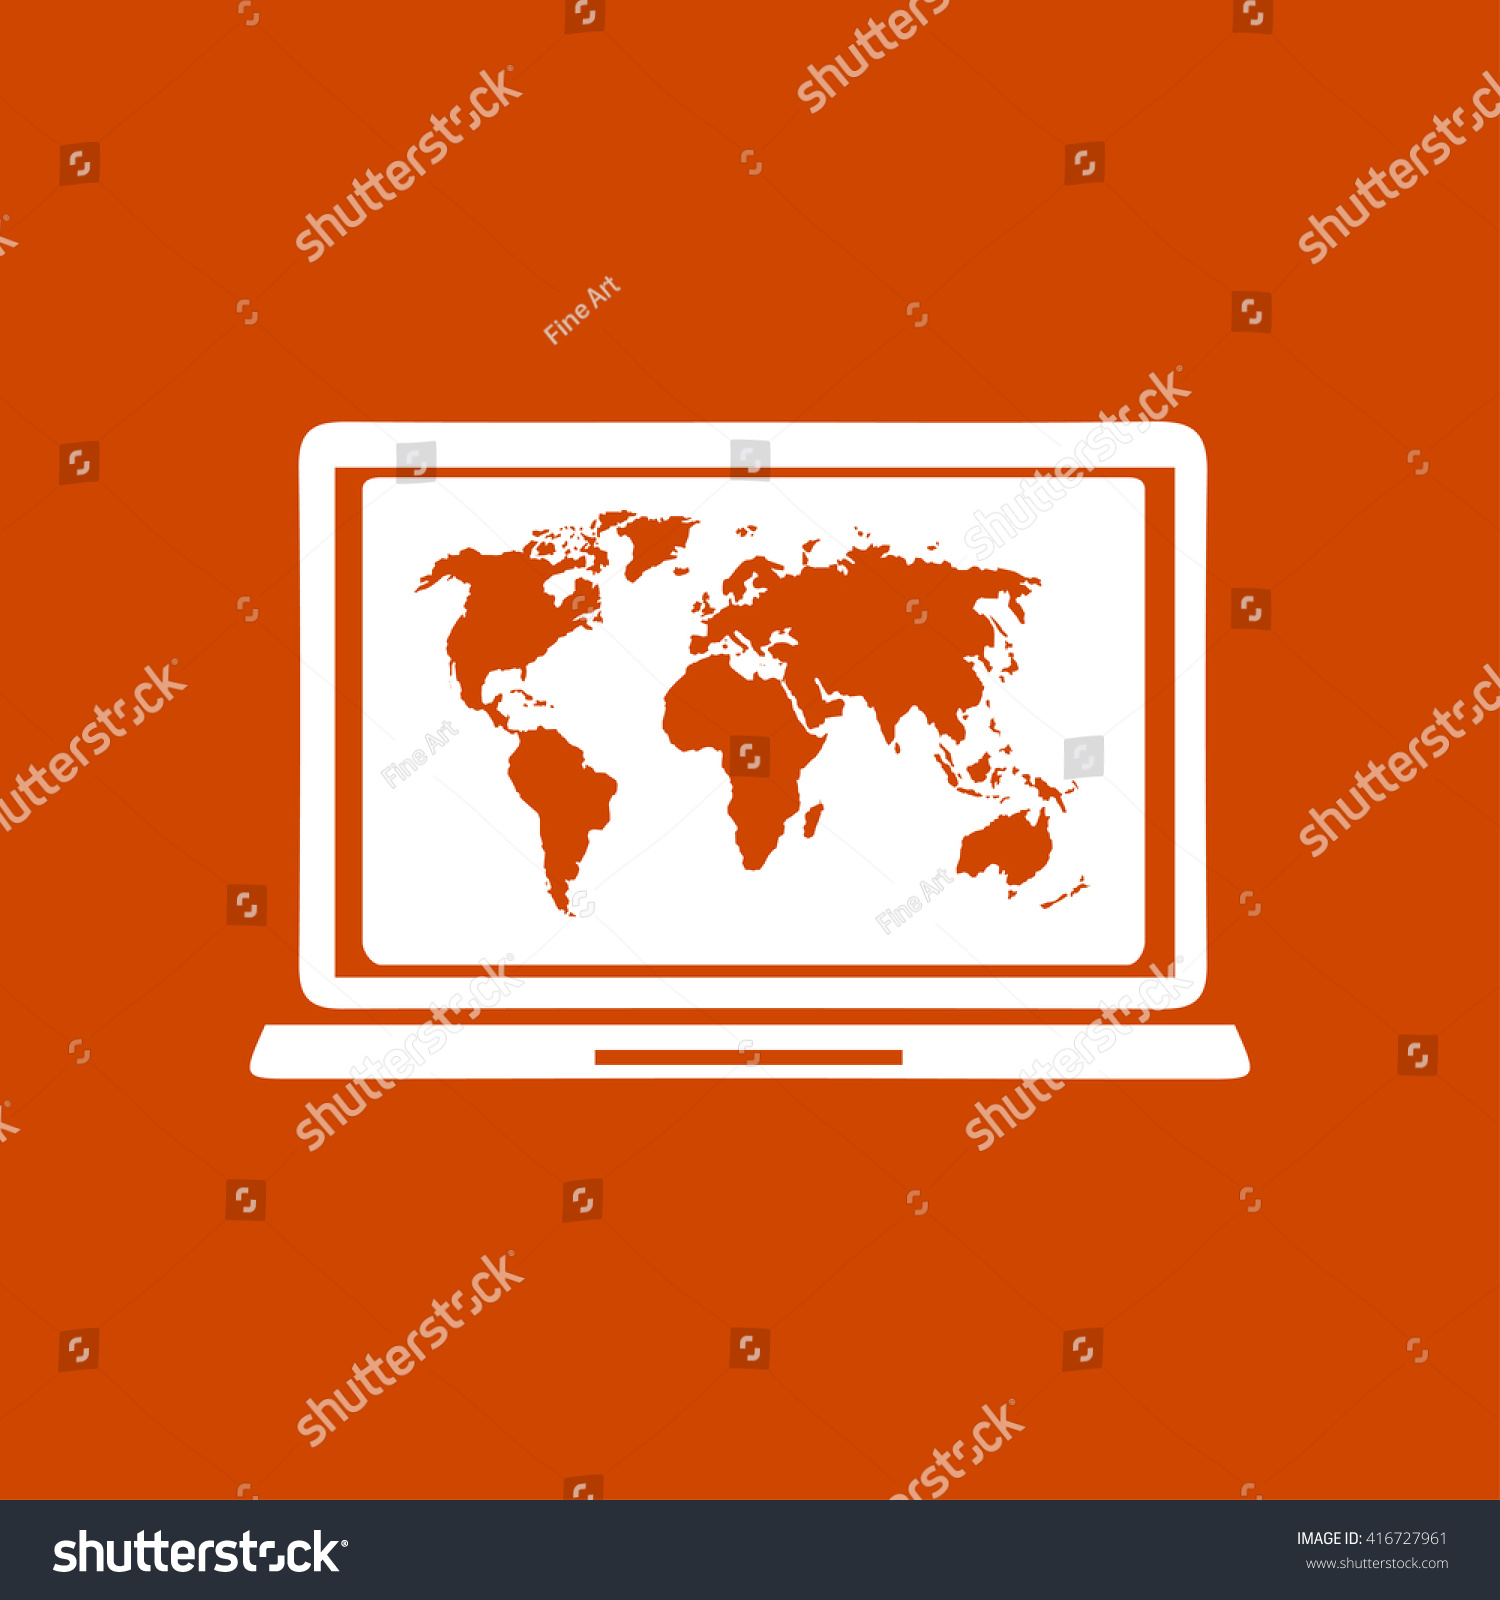 Laptop world map illustration world map stock vector 416727961 laptop and world map illustration world map geography symbol flat design style vector gumiabroncs Gallery